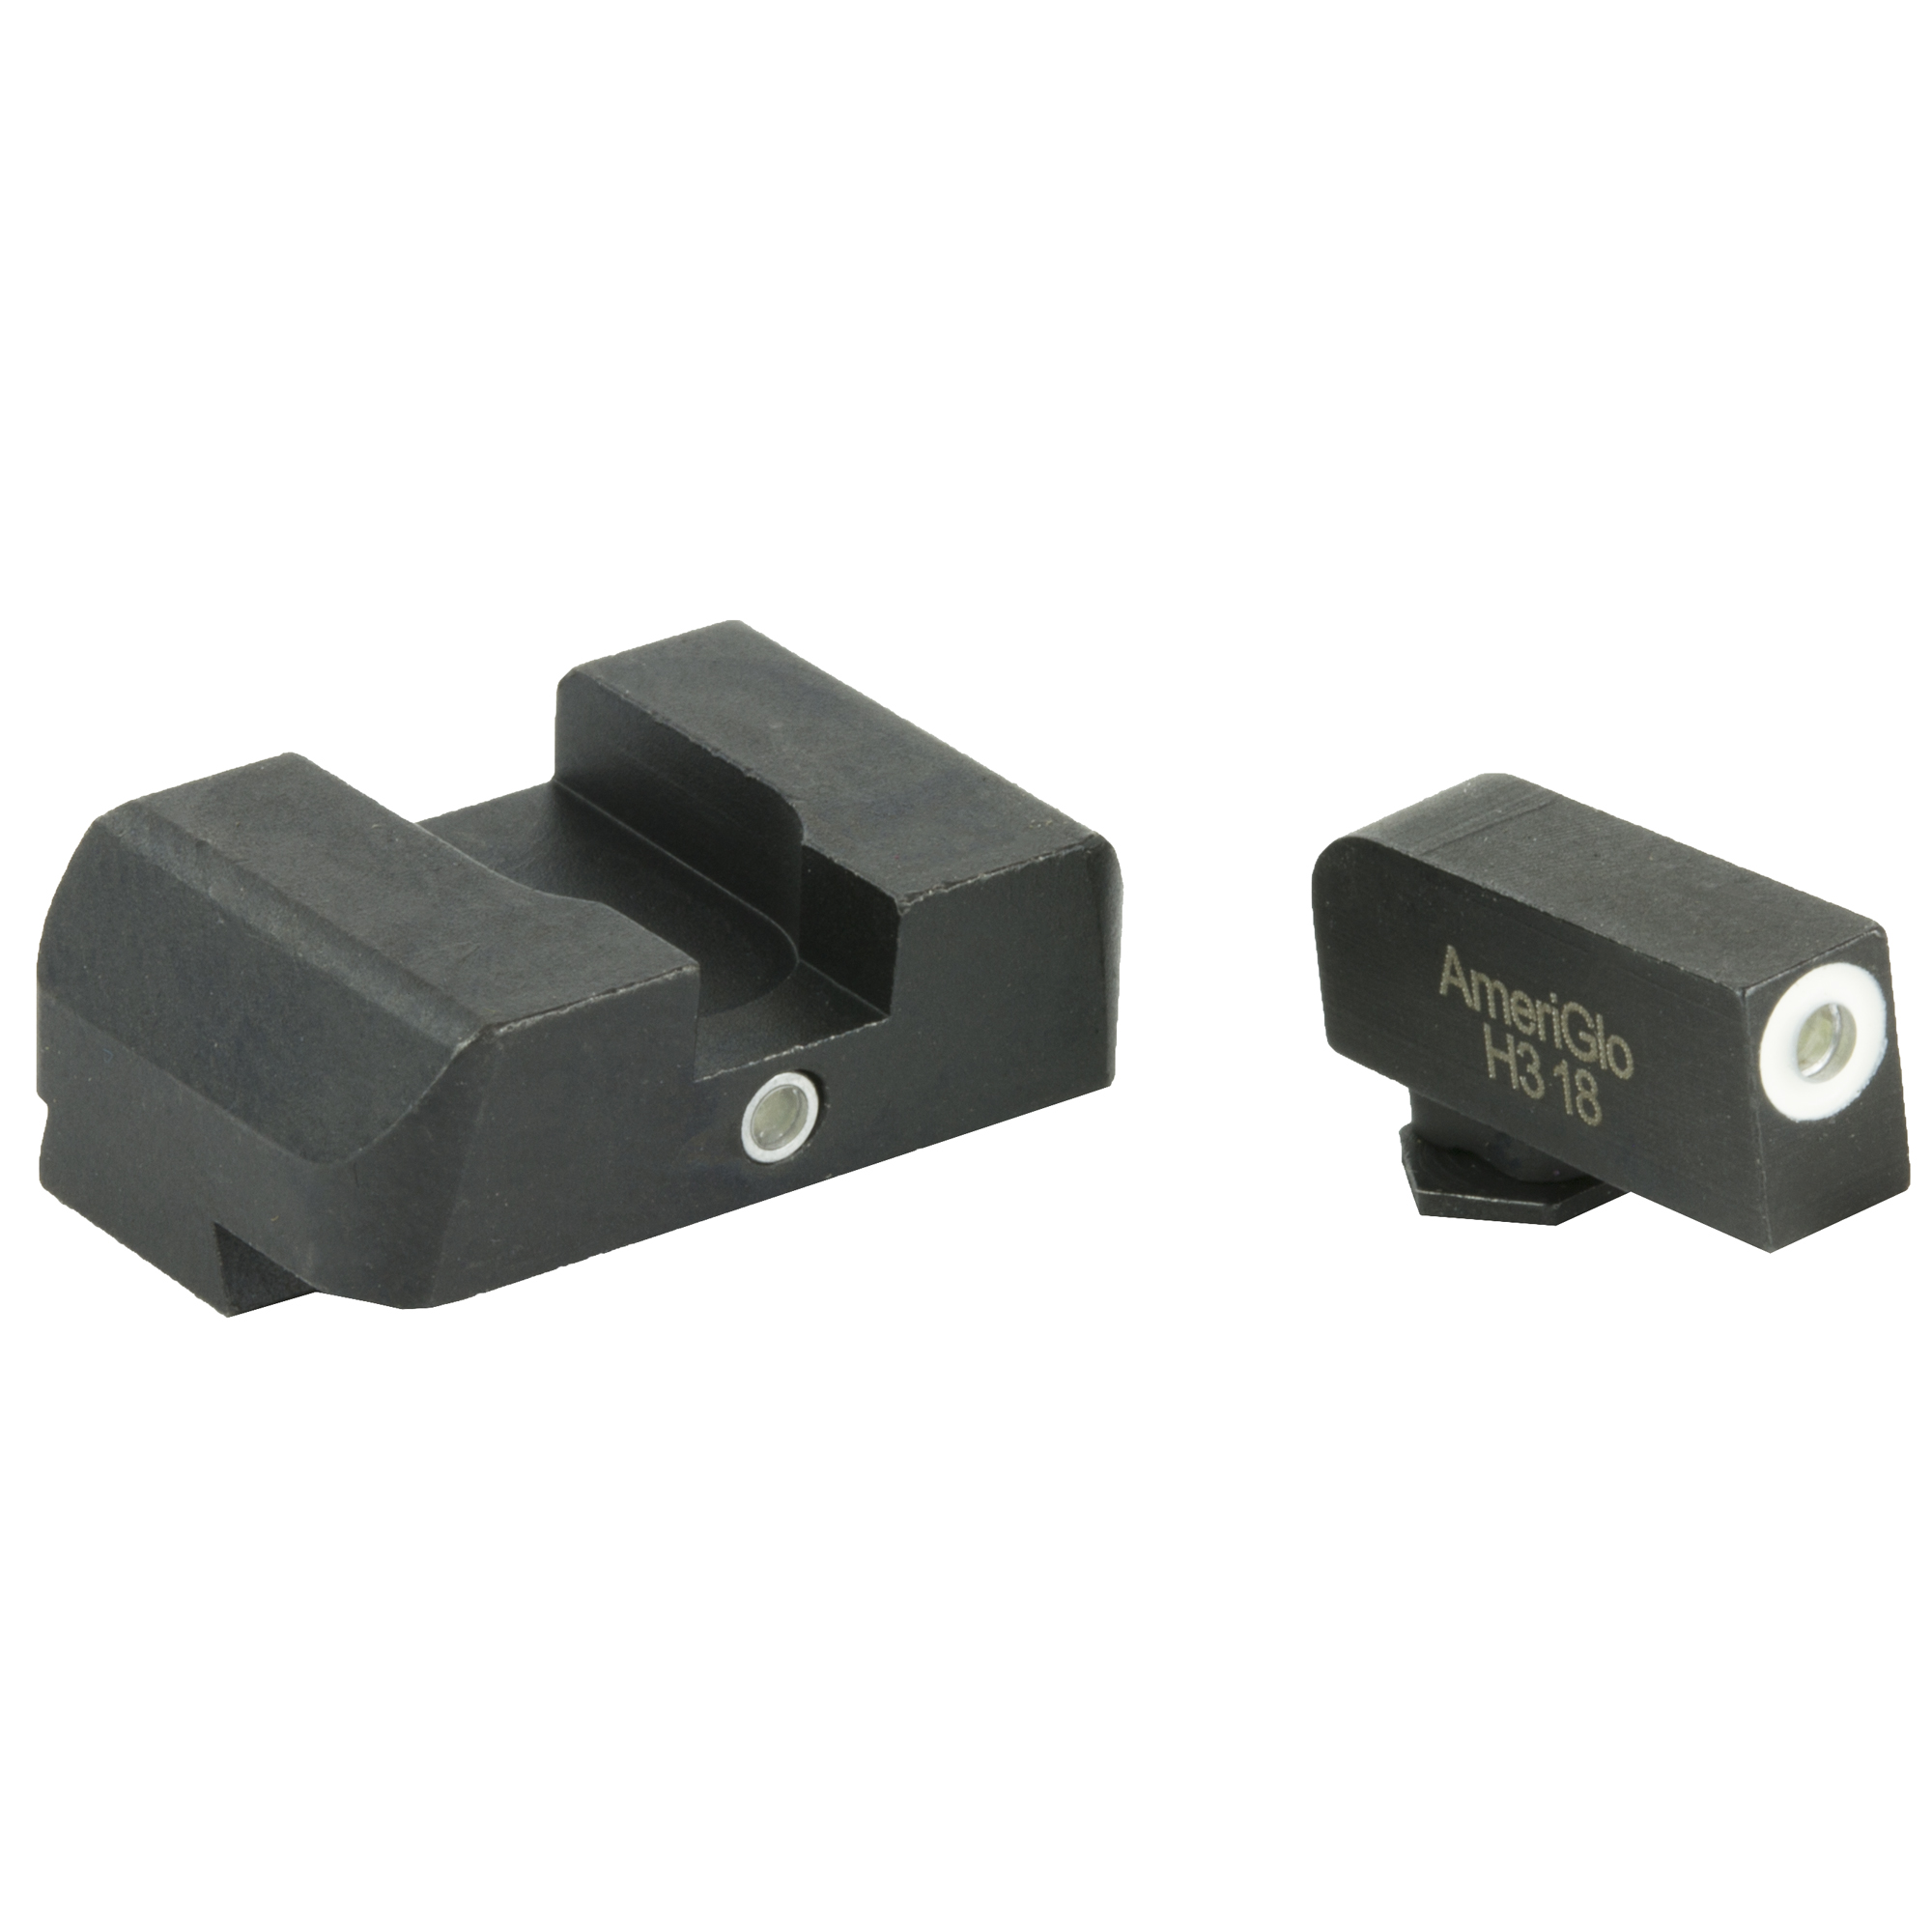 A quality set of night sights is a must if you plan on using a handgun for home defense and personal protection. Being able to aim in low-light conditions is an invaluable benefit made easy with the AmeriGlo I-Dot Tritium night sights for Glock handguns. These handgun sights are made from steel and feature a green tritium insert on the front sight post with a white photoluminescent outline for visibility during the day. The rear sight has only a single tritium lamp in the center that helps bring your eye to the front sight post for fast target acquisition. The I-Dot sight arrangement was designed with close quarters and speed in mind for those split-second moments where you don't have the time to line up a traditional three-dot sight. Just place the front dot on your target and squeeze the trigger. These pistol sights are easy to install and are a massive upgrade from your standard Glock sights. The AmeriGlo Tritium I-Dot sights are a great option for using your pistol day or night.